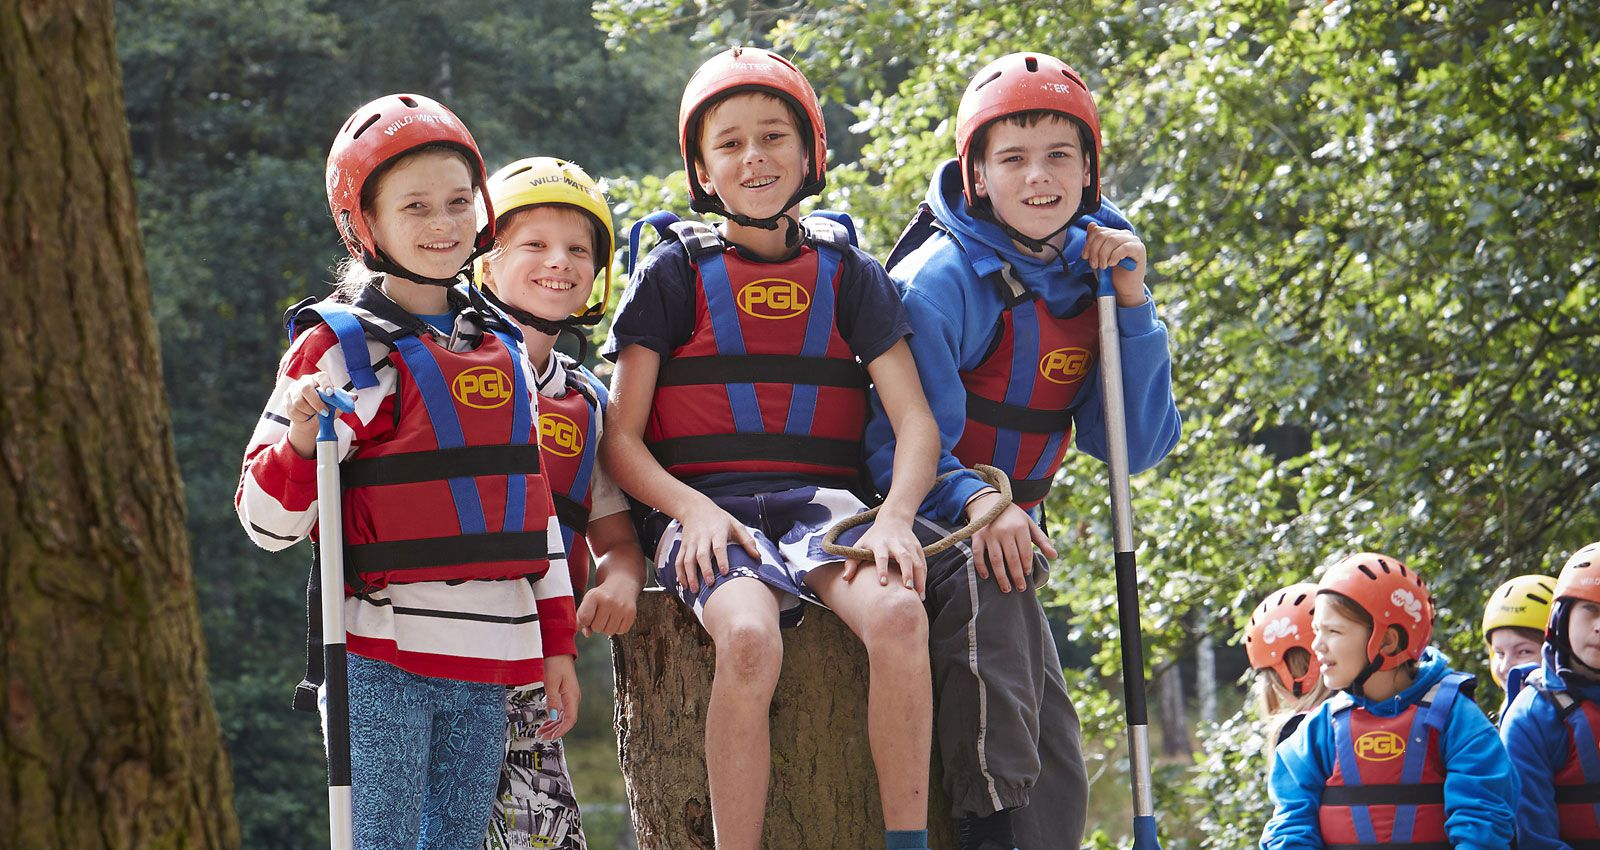 PGL Adventure Holidays - Introductory Adventures - 2-3 night UK breaks for 7-17 year olds - Summer Camps UK